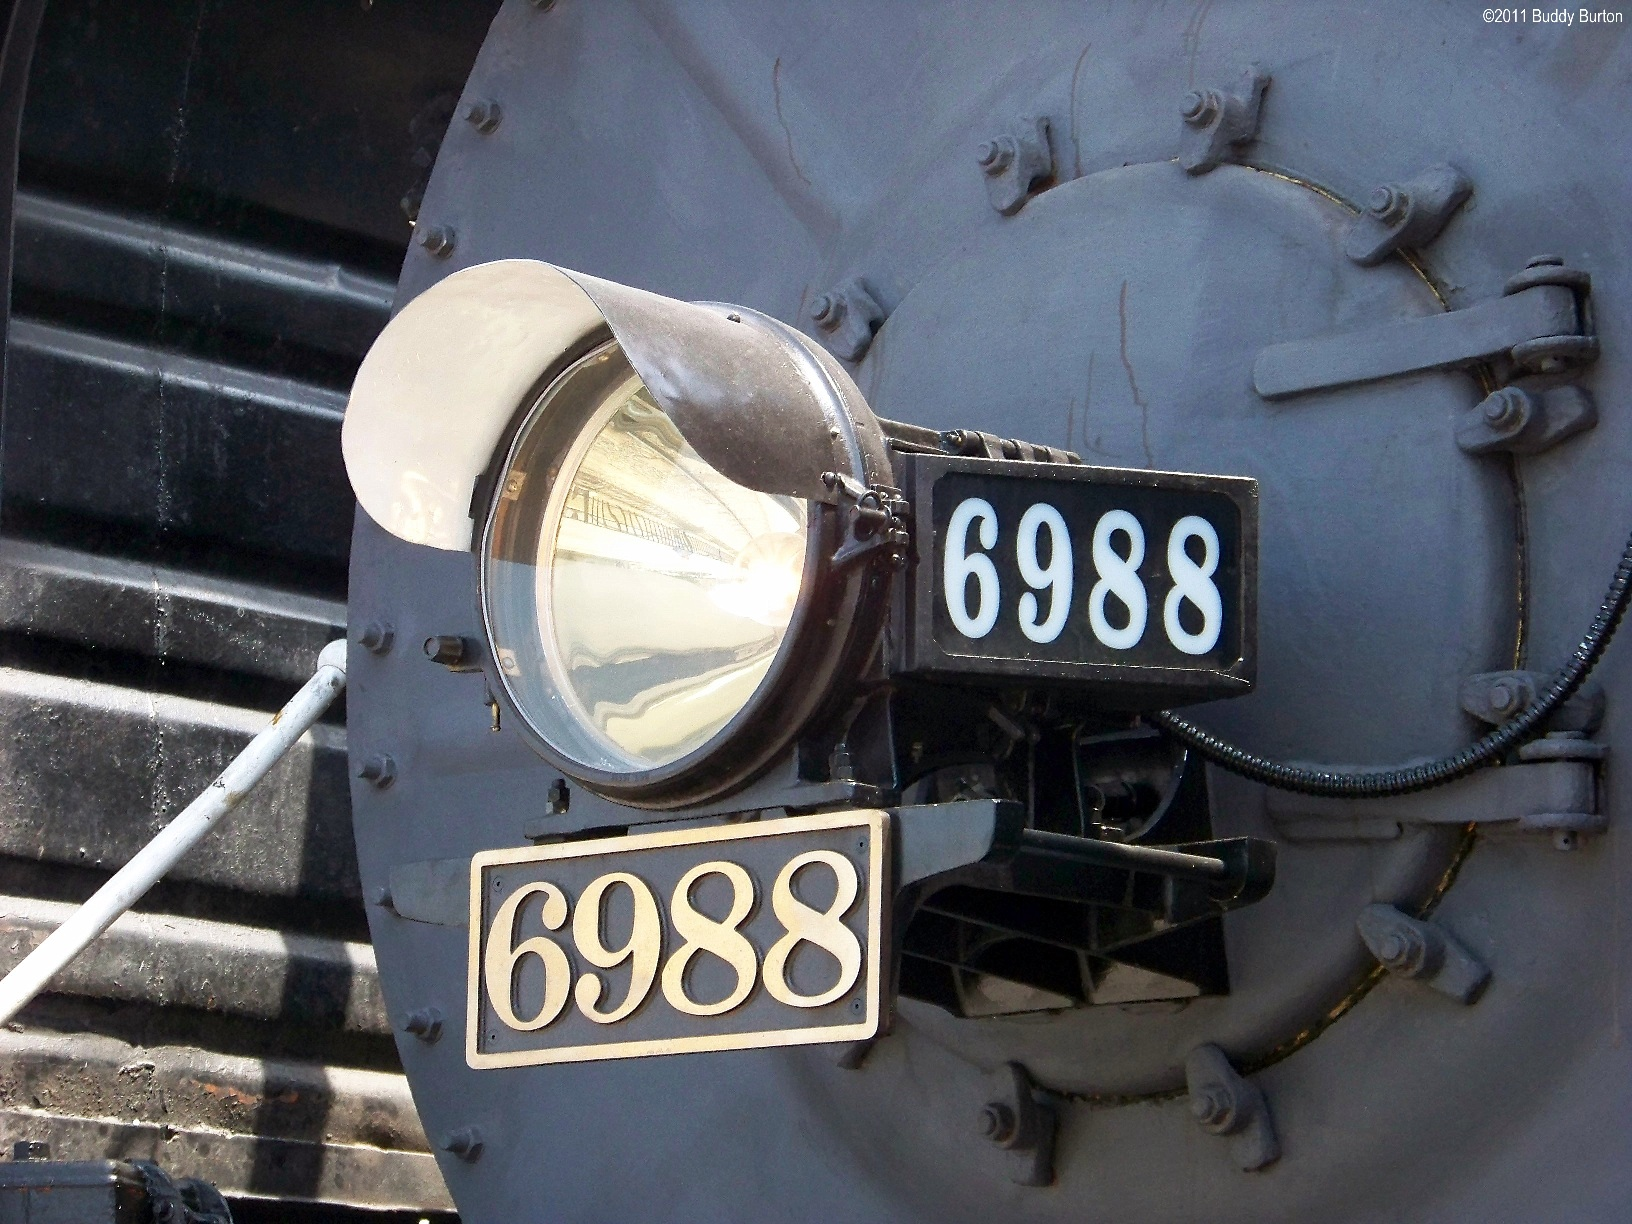 6988 light and numbers